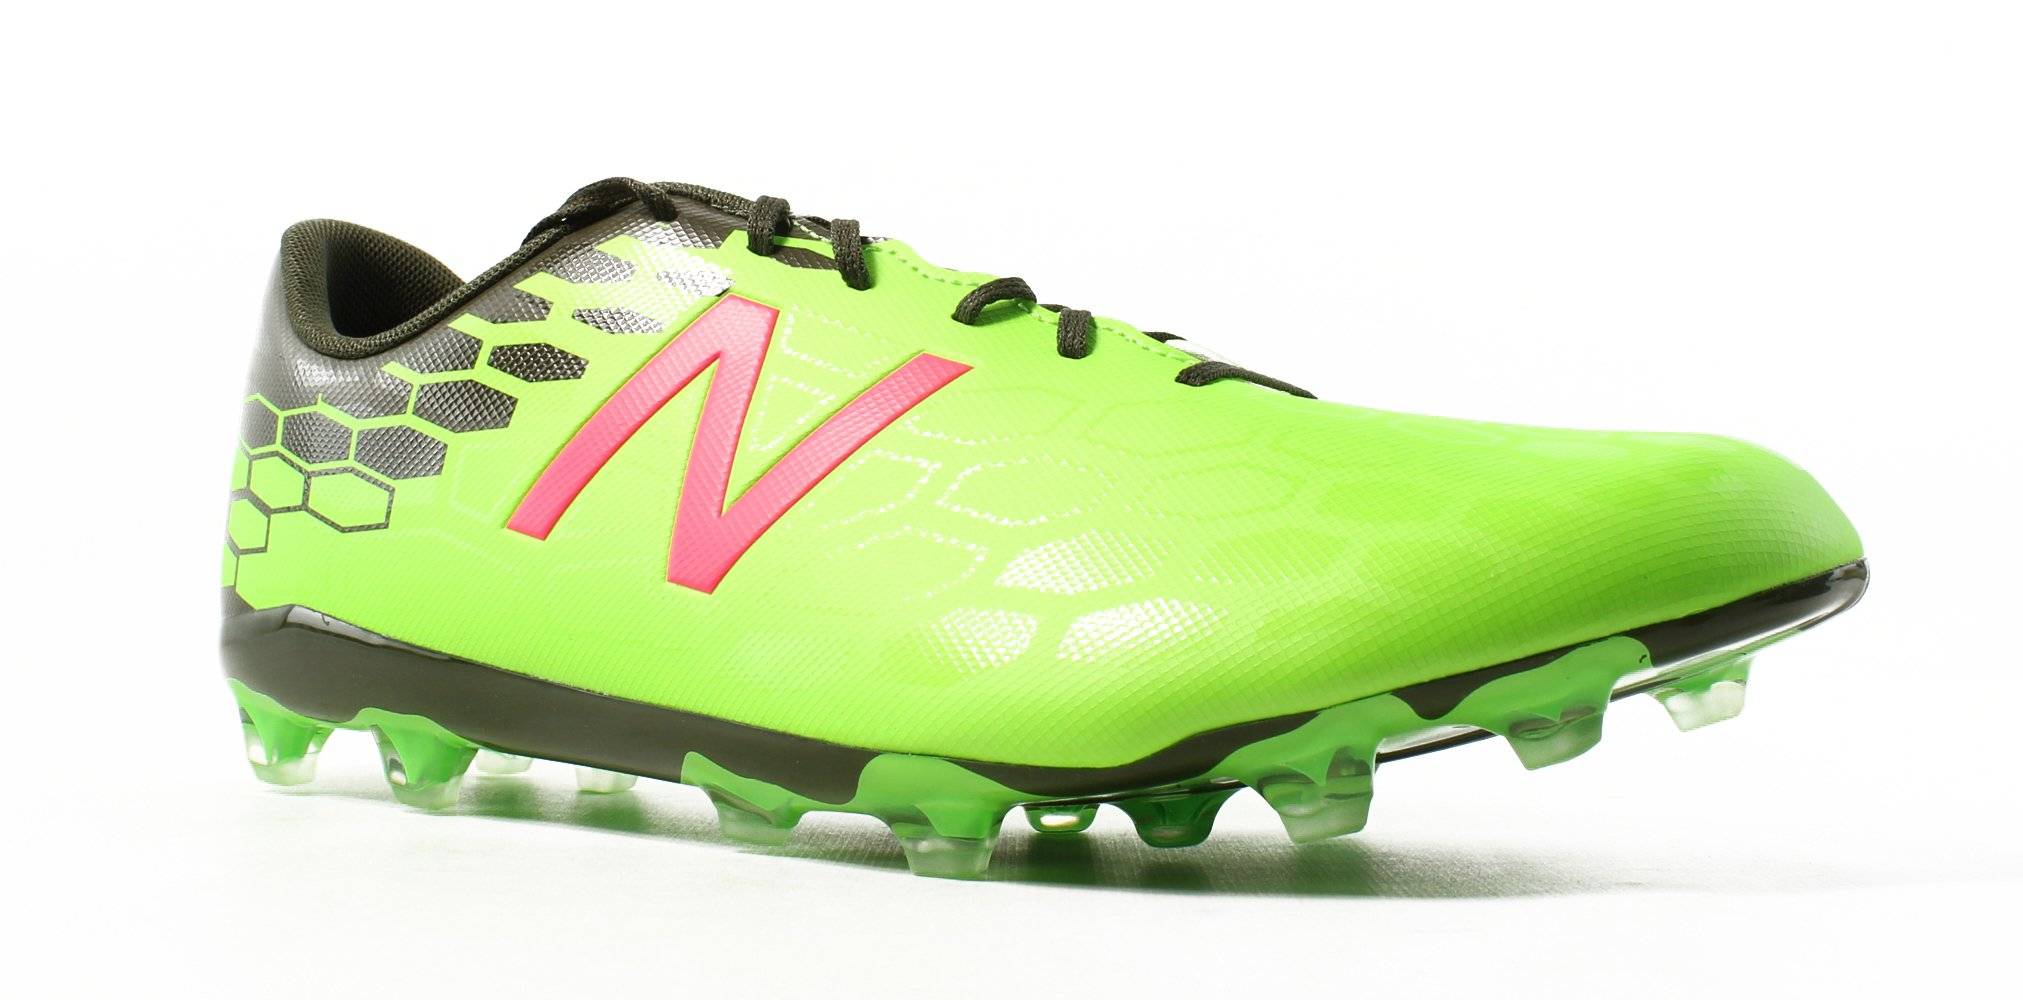 New Balance Men's Visaro 2.0 Control FG, Energy Lime/Dark Military Triumph, 12 D US